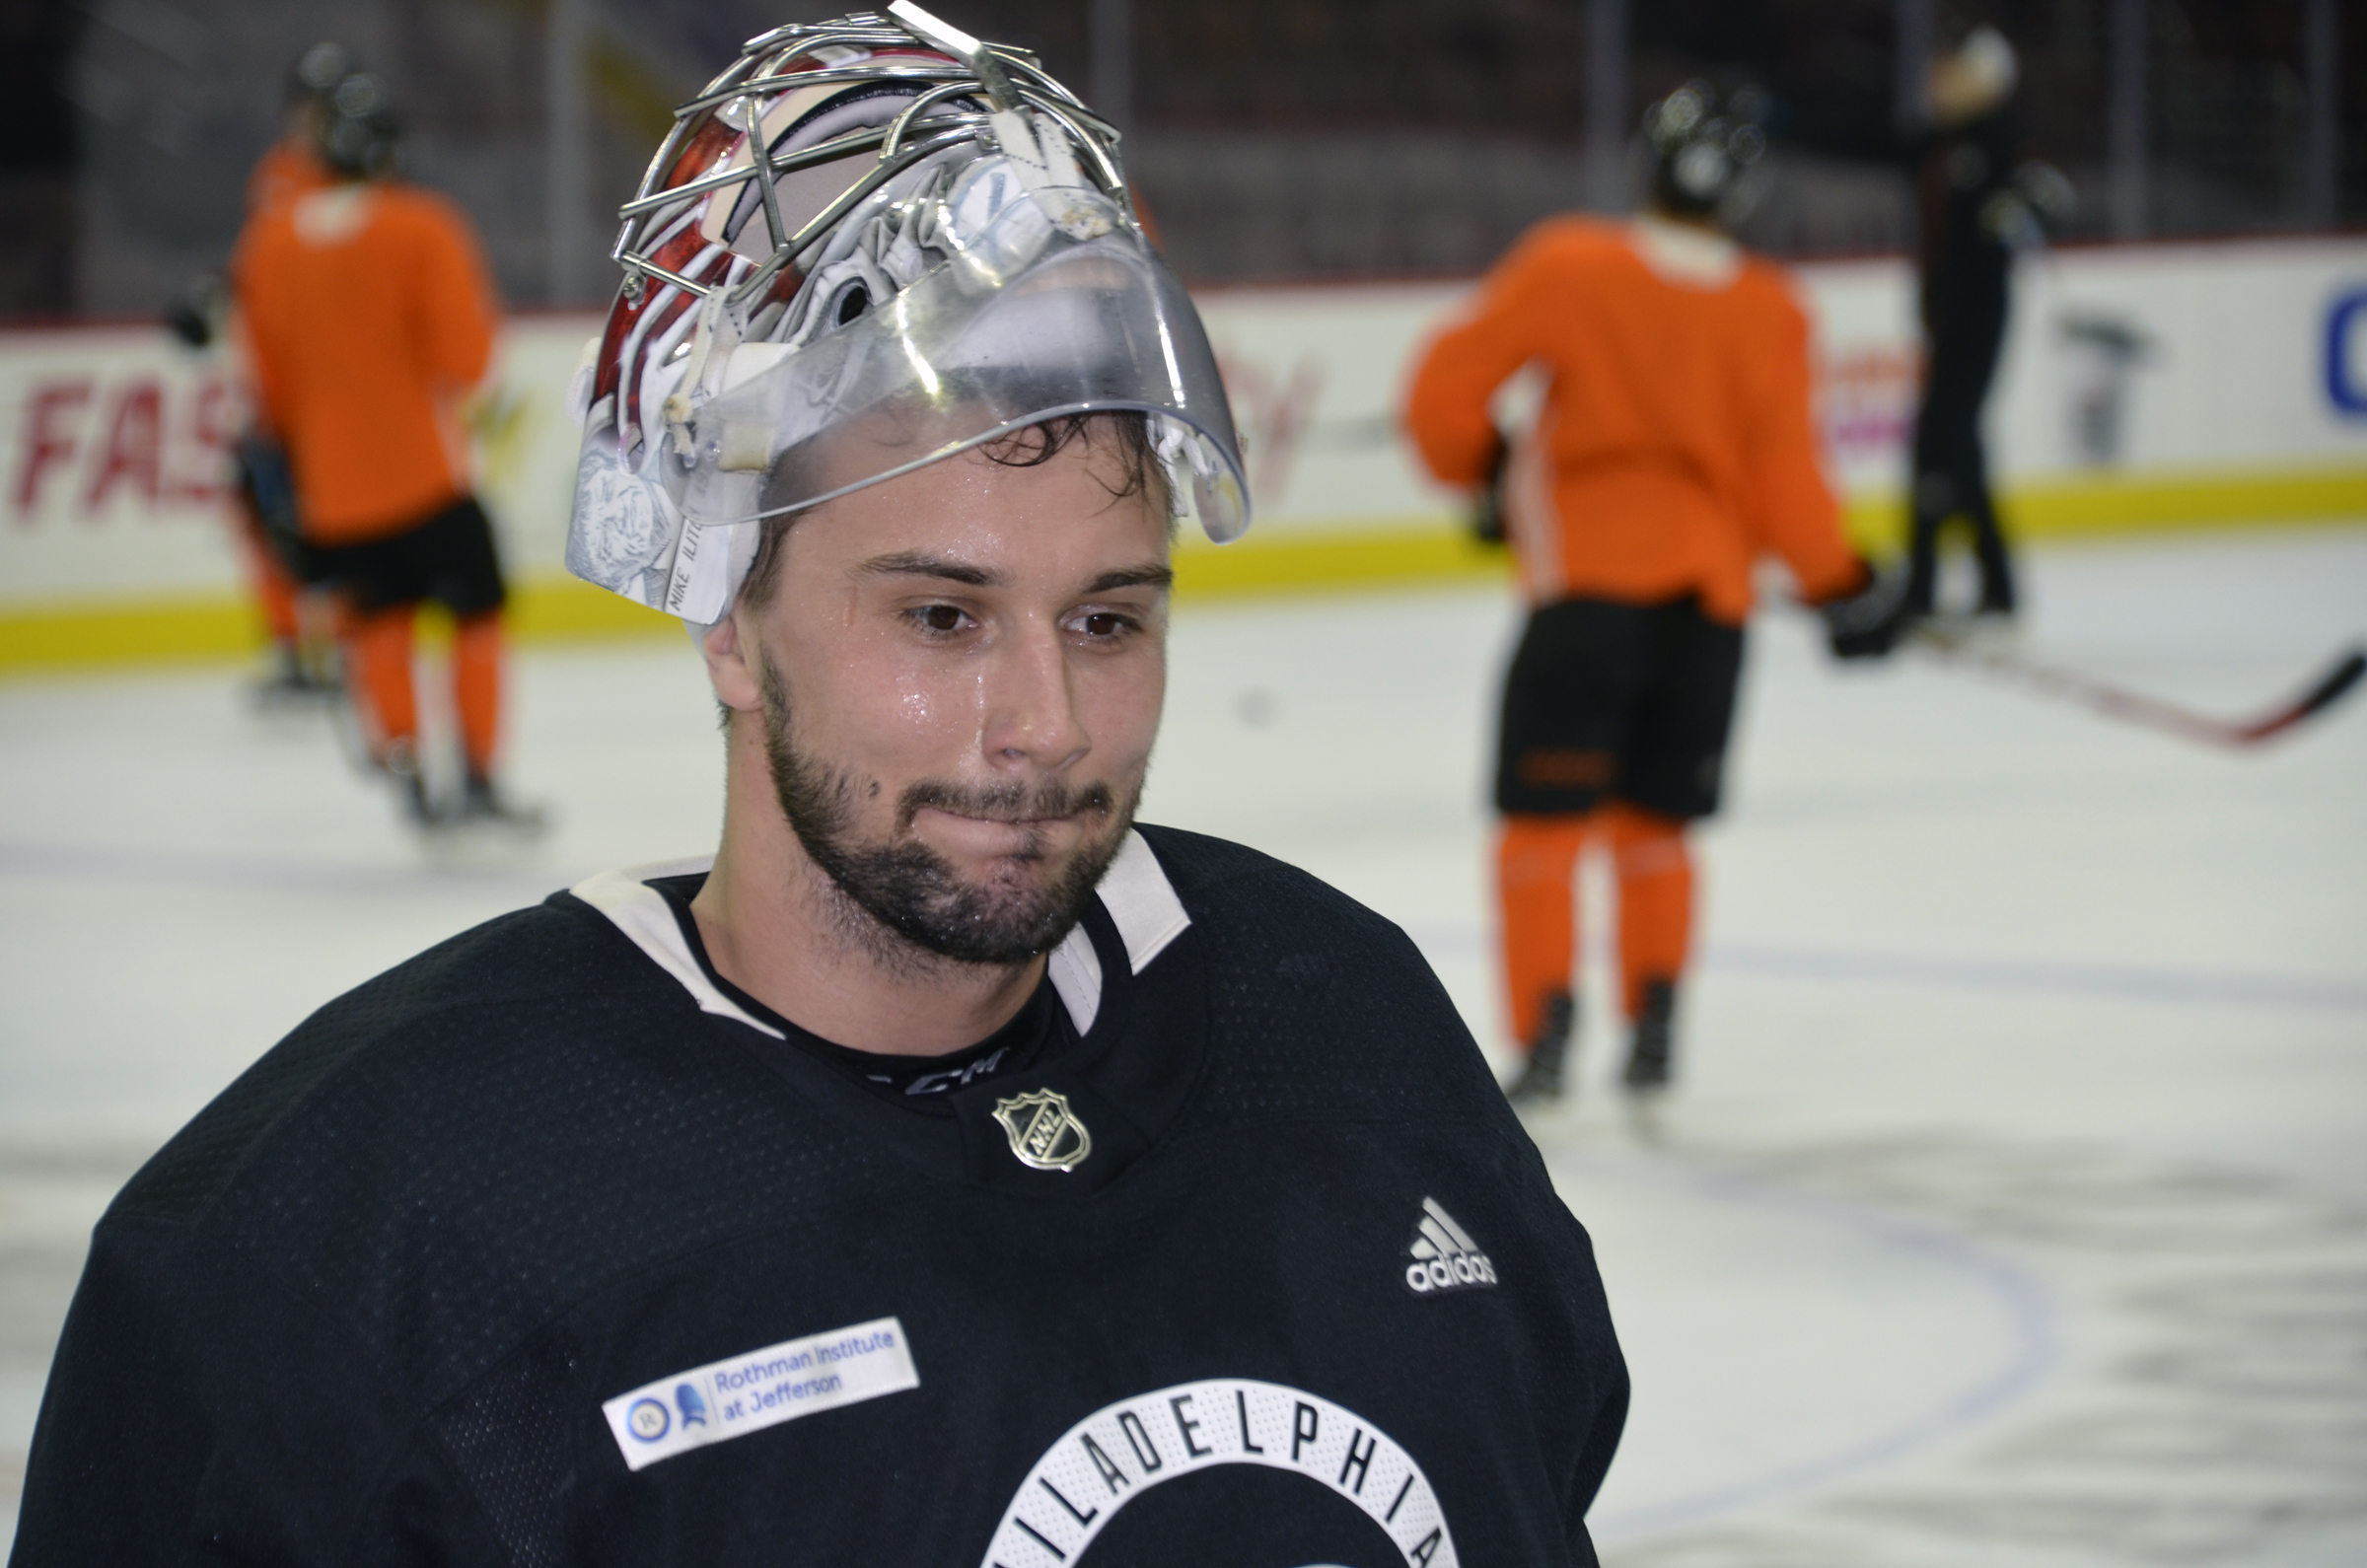 New Flyers goalie Petr Mrazek at Tuesday´s morning skate. He did not start Tuesday´s game, but is expected to play on Thursday.